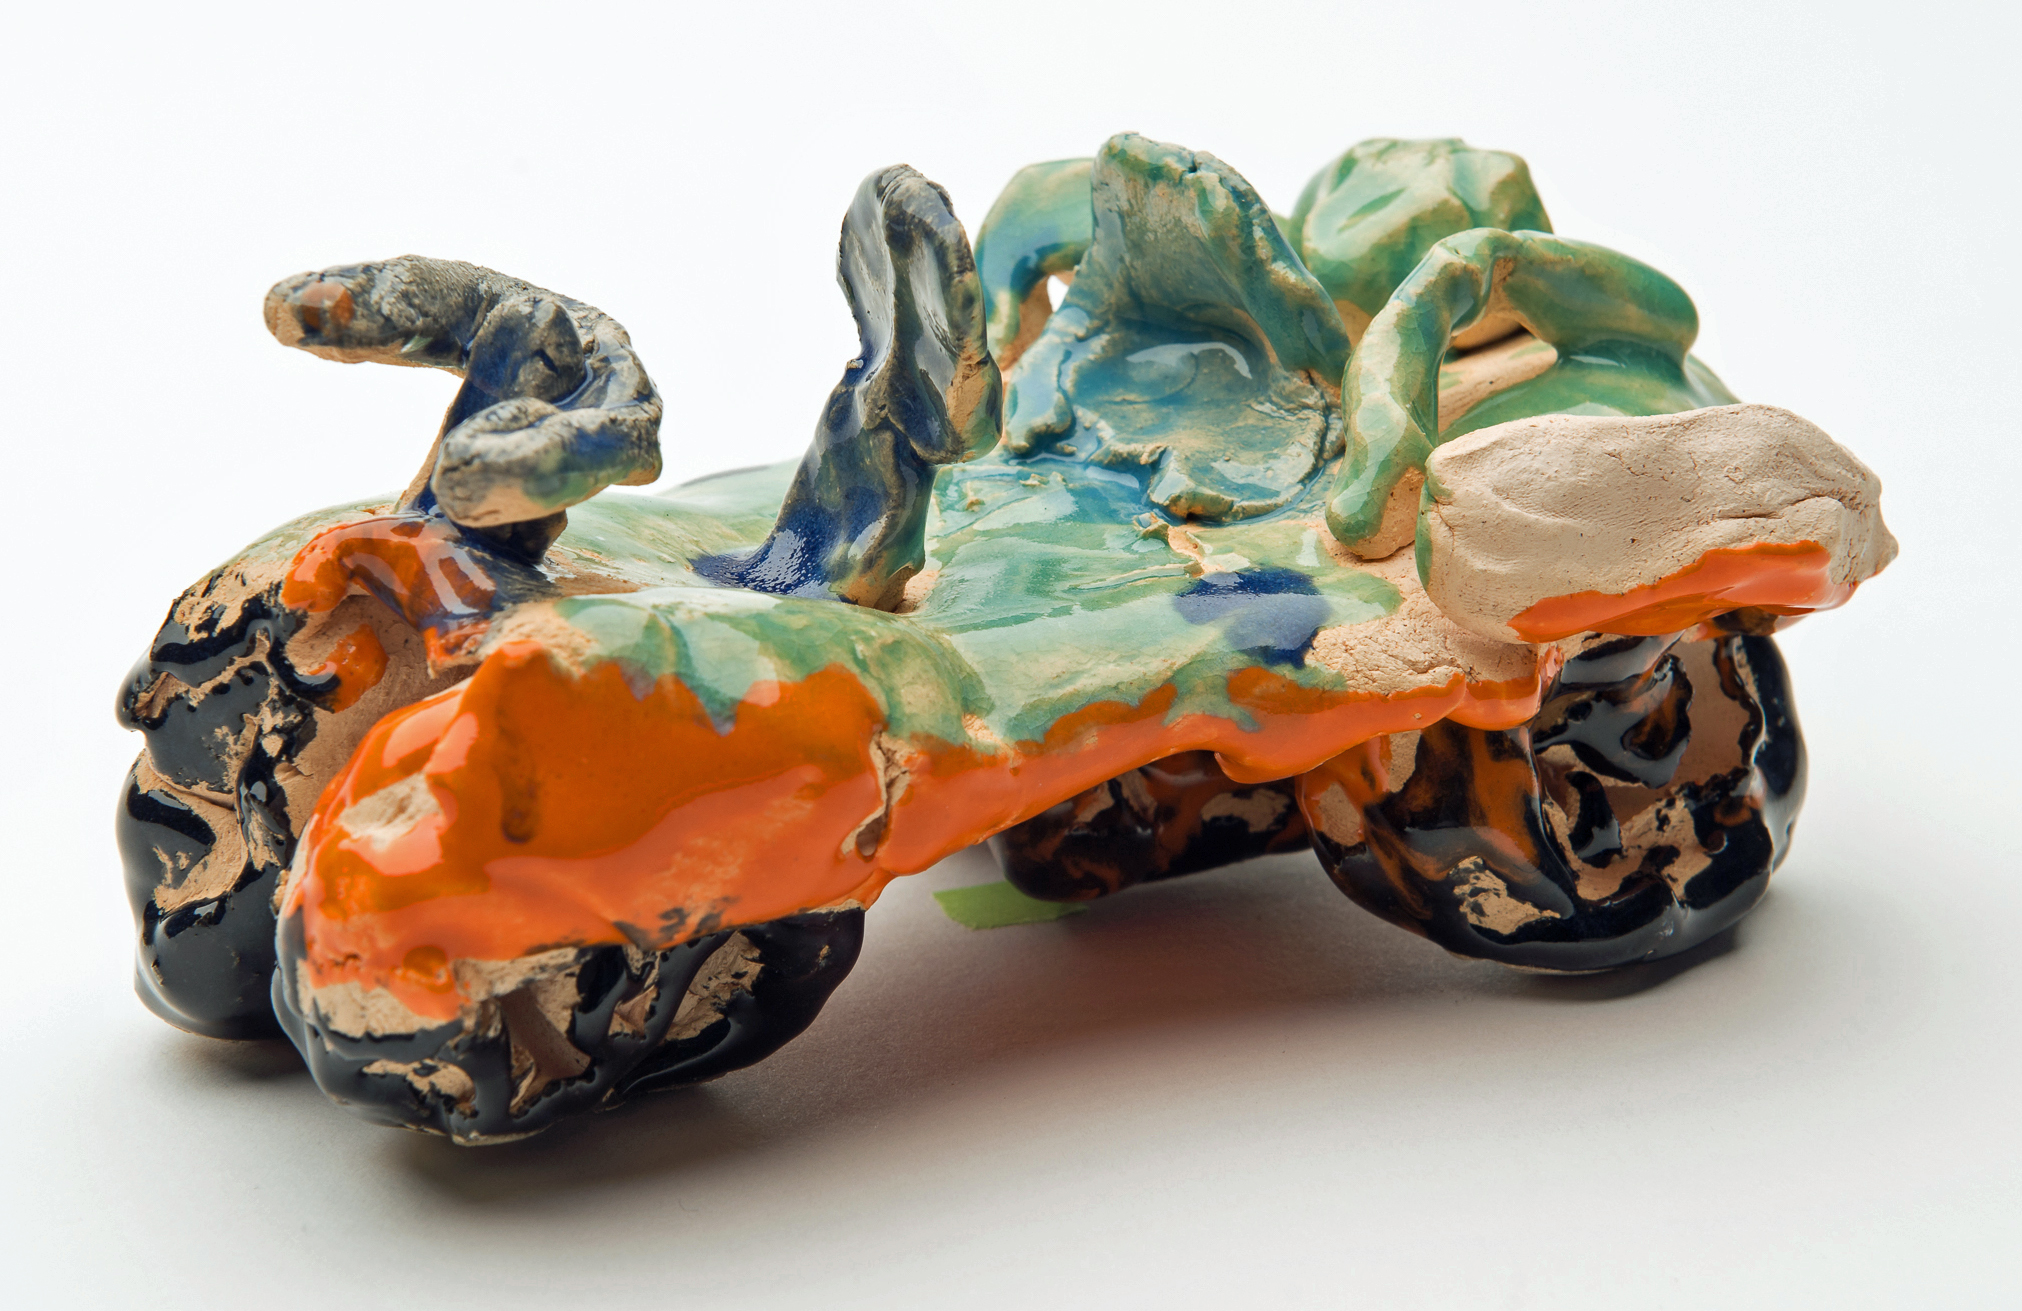 2 Kids Ceramic Car - Kids Like Clay.jpg